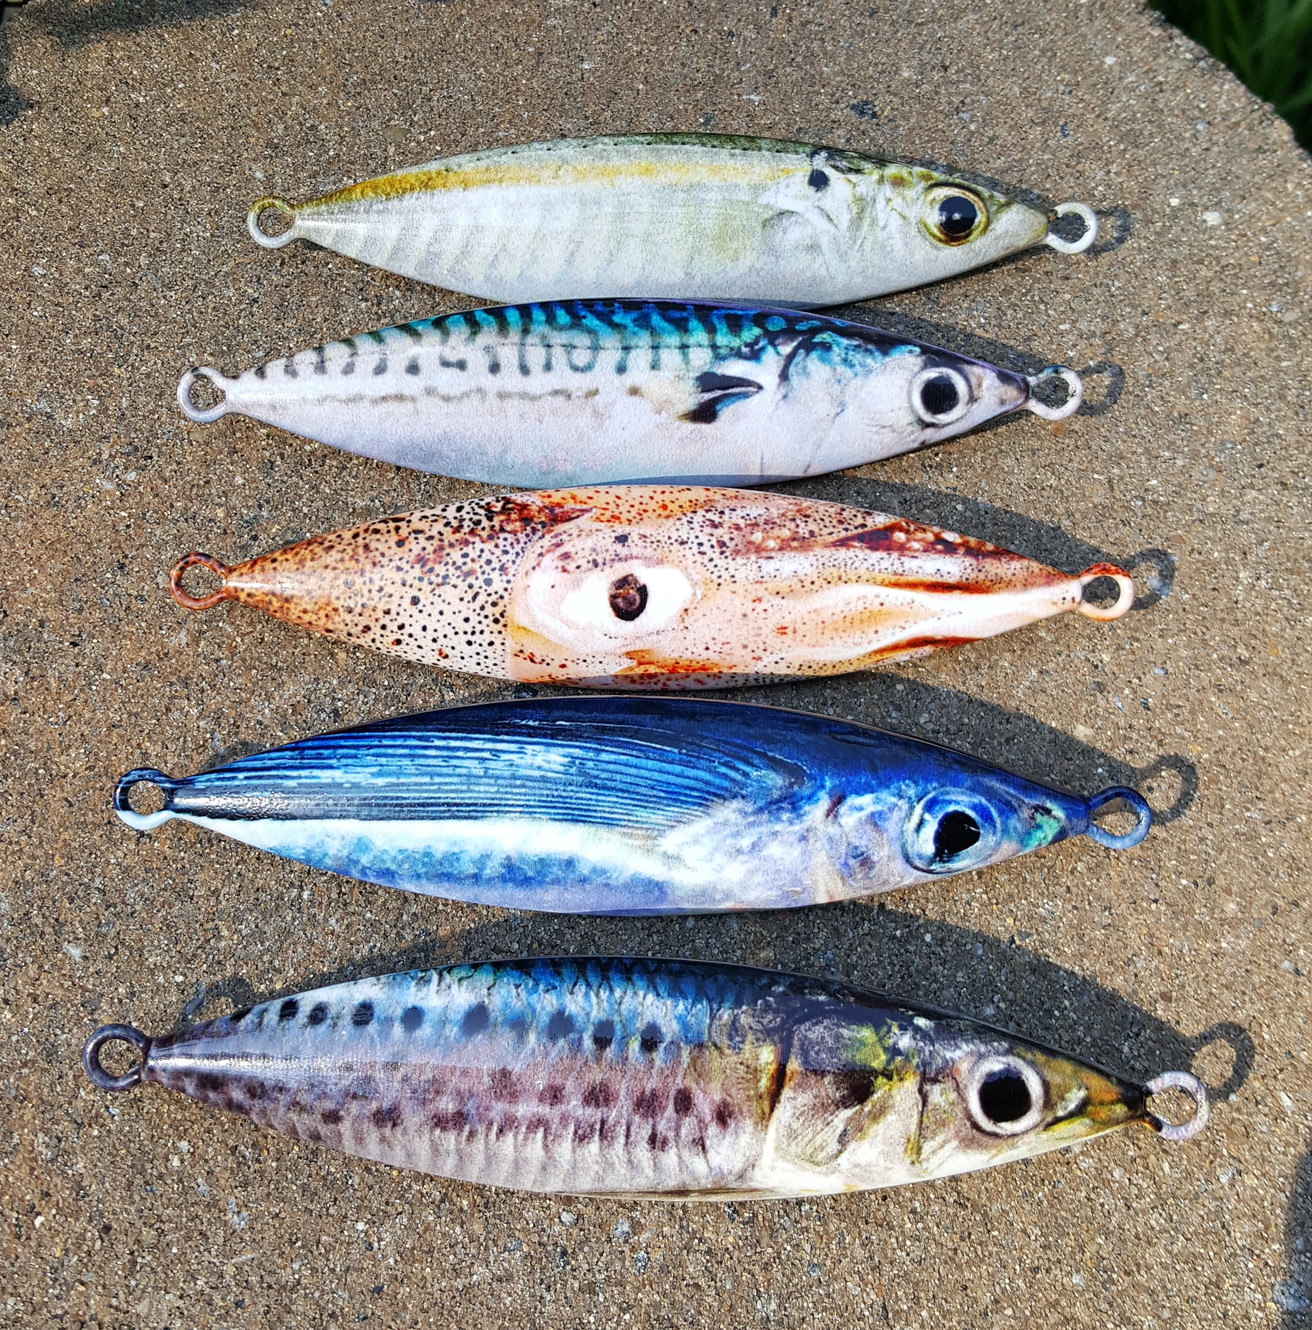 JigSkinz - Make Your Fishing Lures Look Brand New